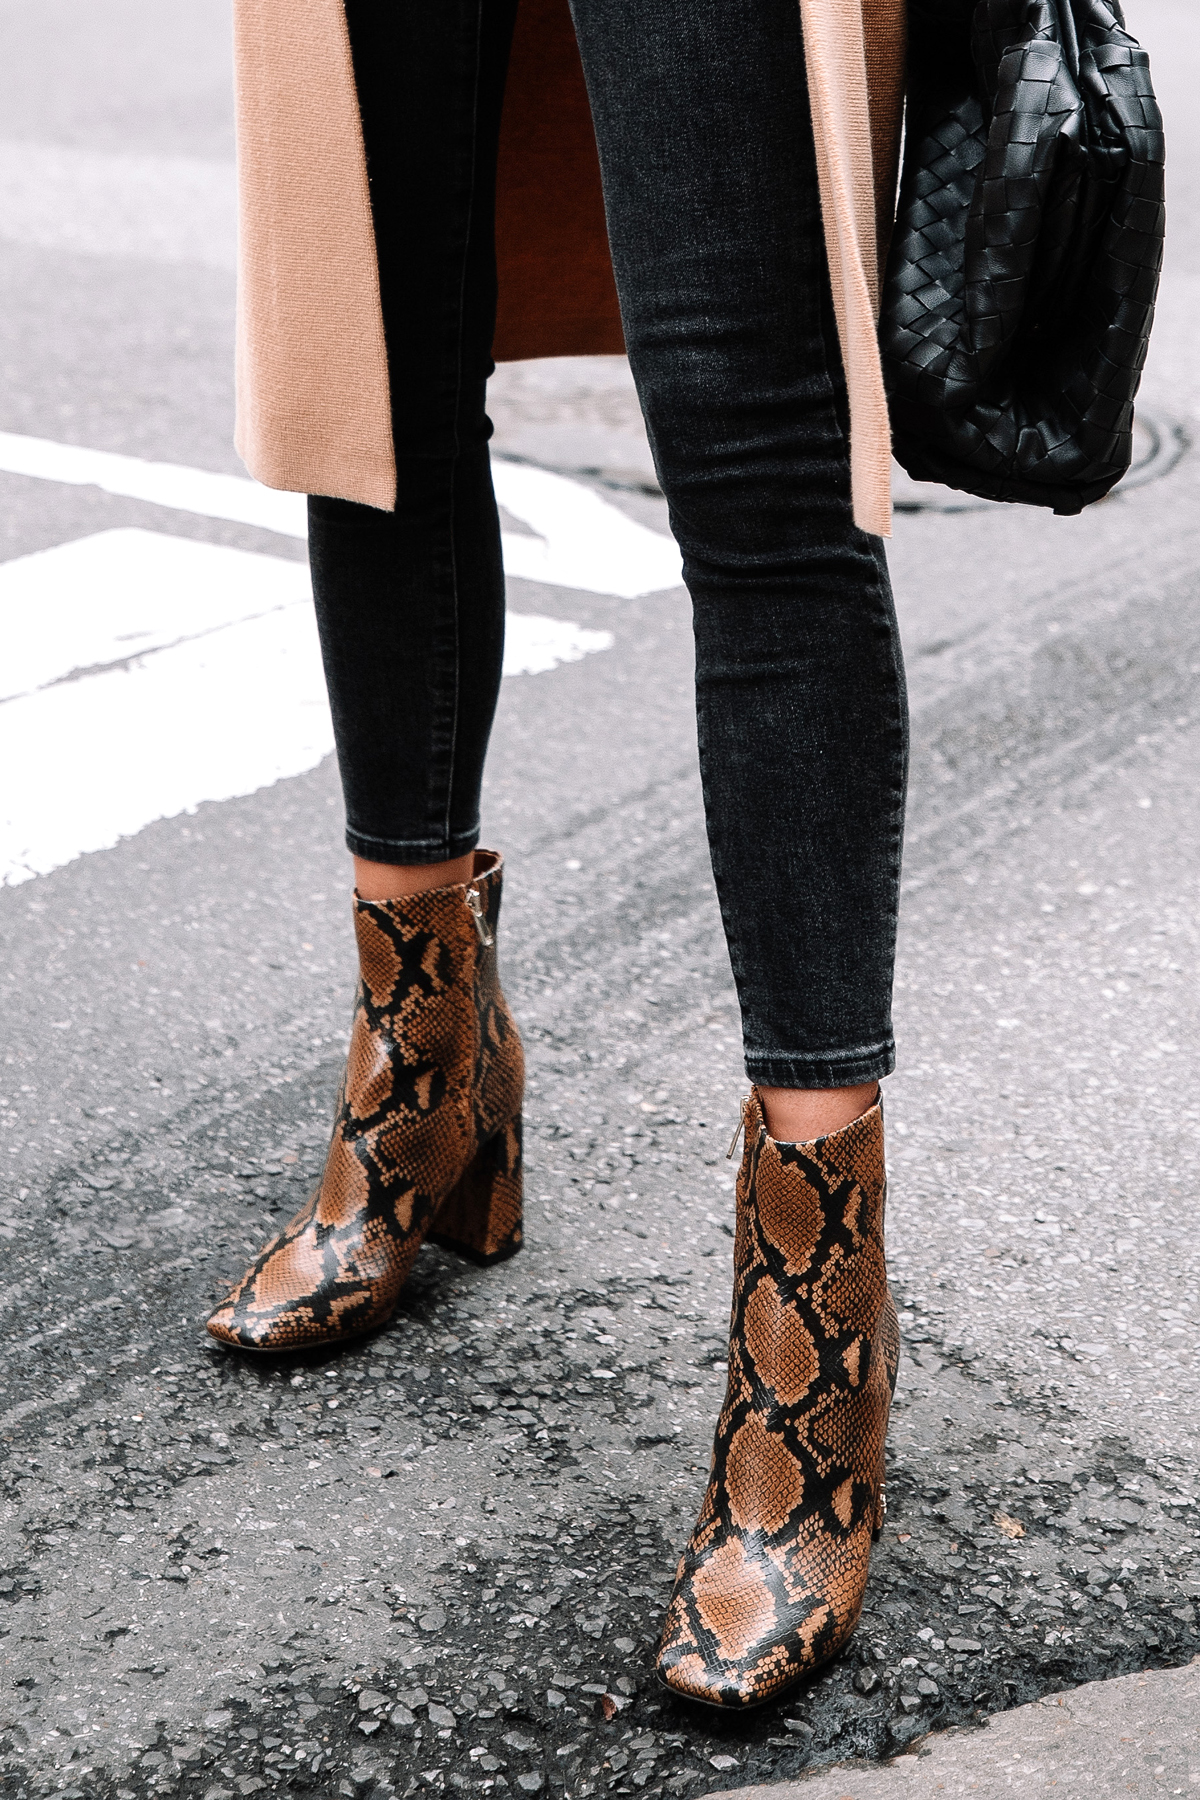 What to Wear With Snakeskin Boots